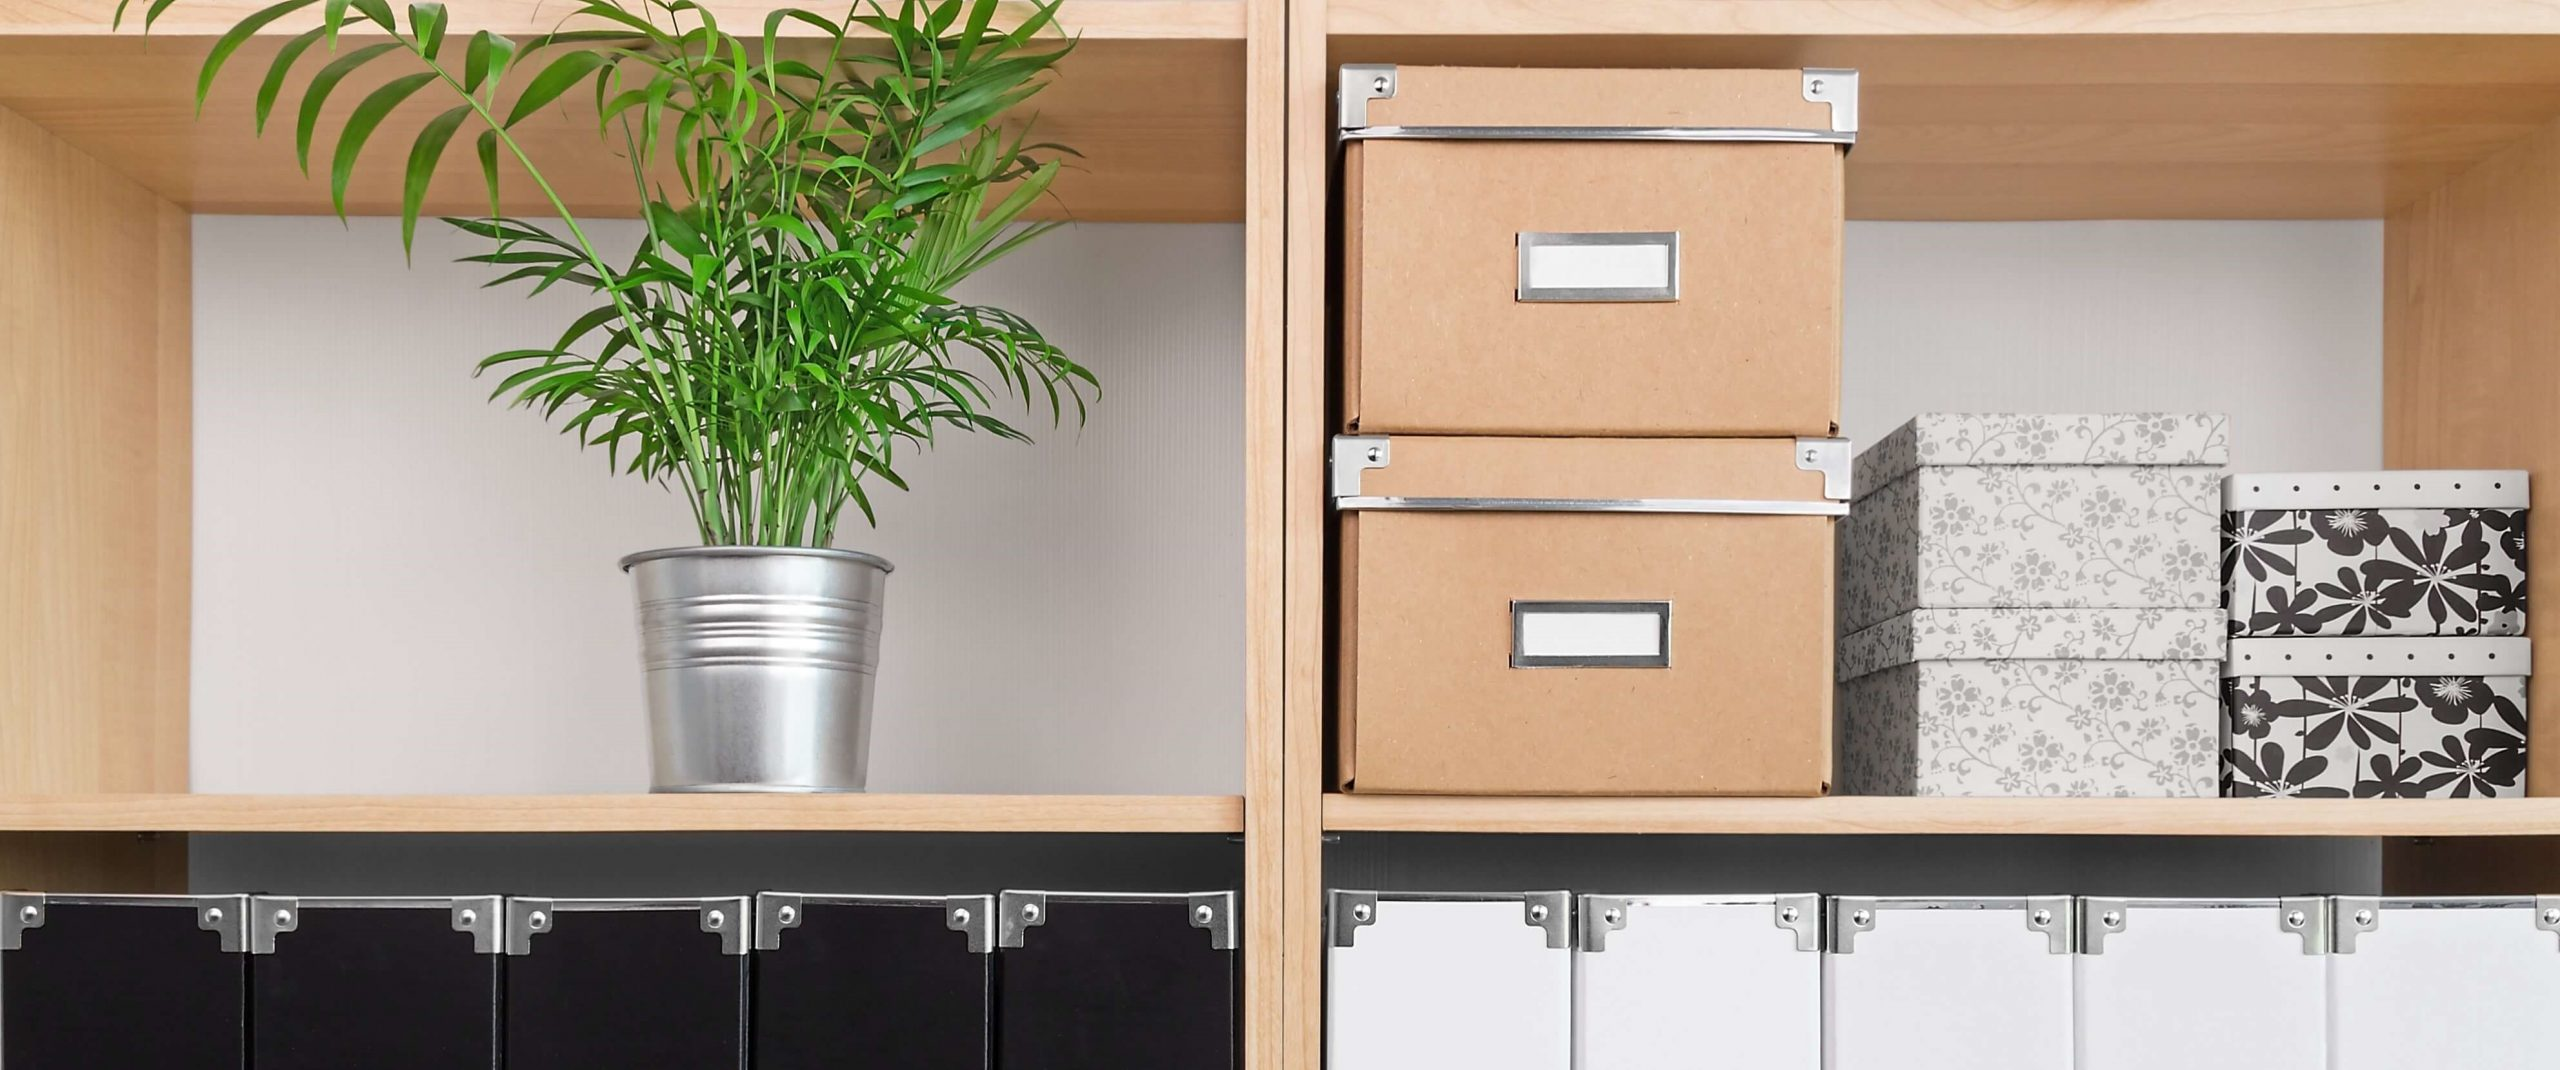 Shelves showing how to declutter and organise your life